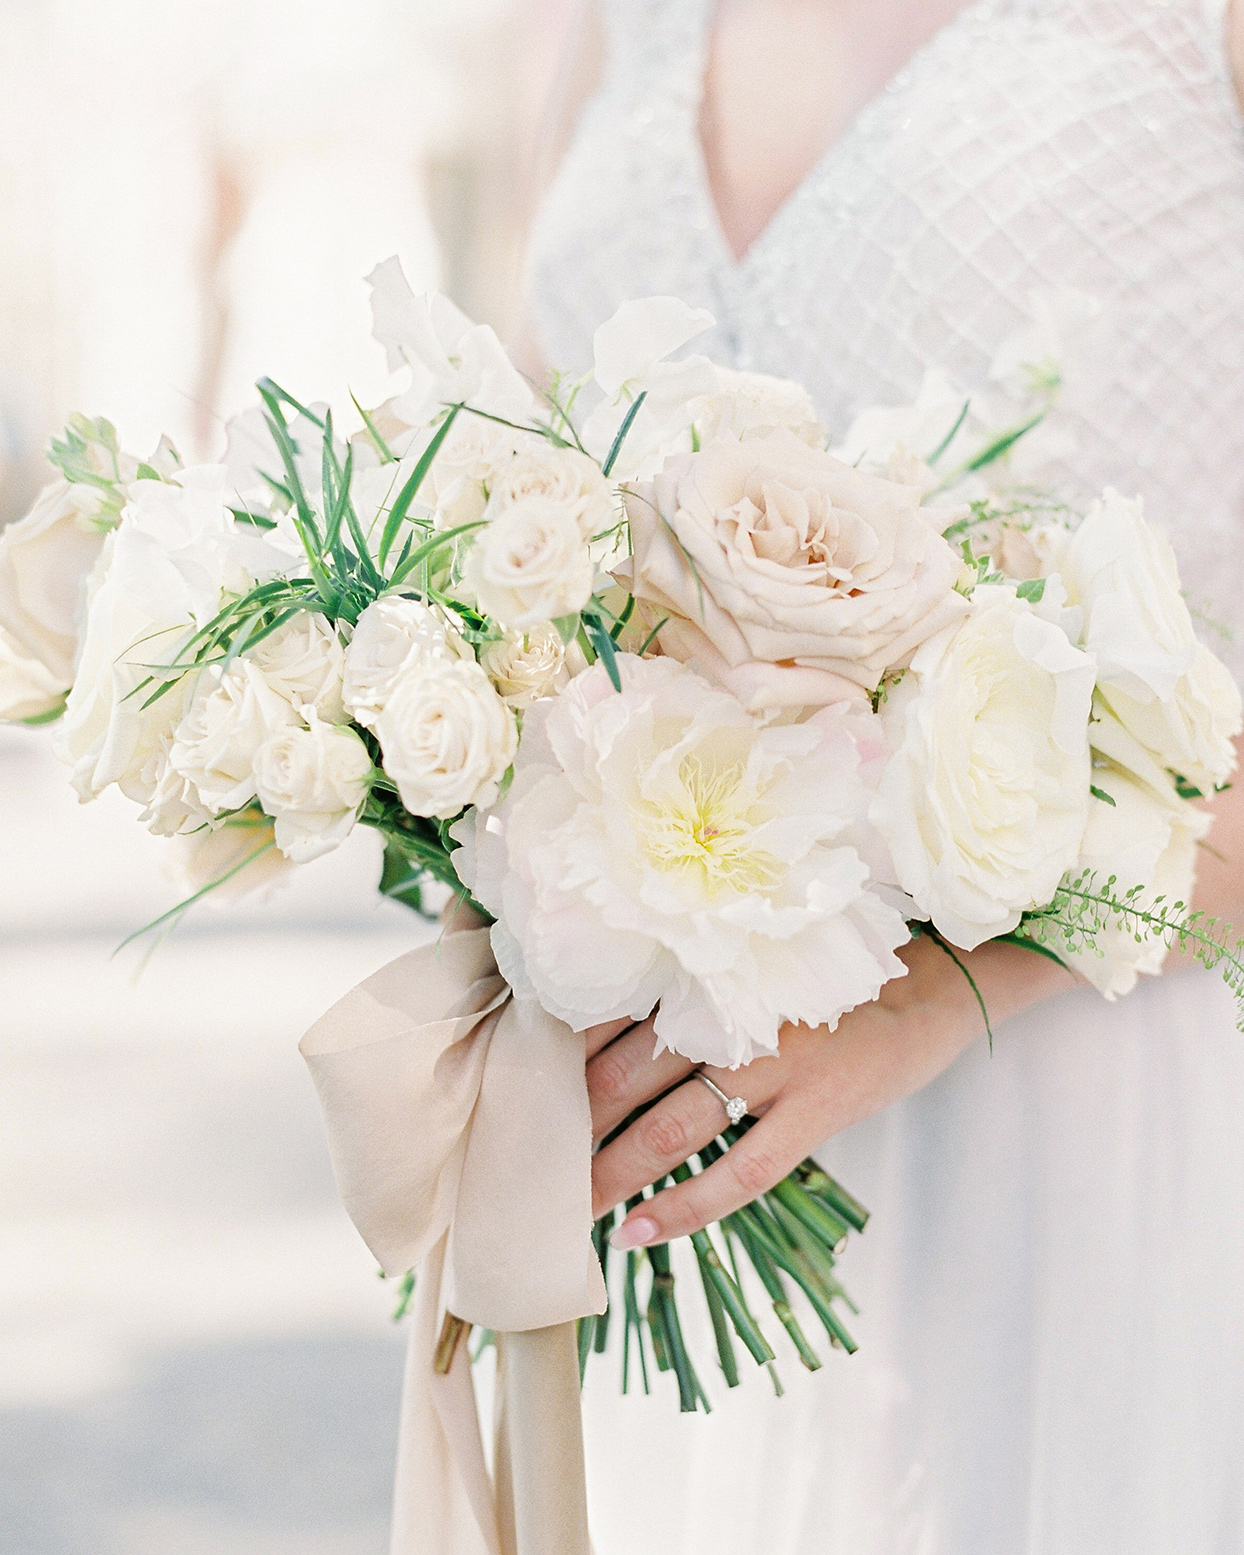 krystyna alexander bride's white and pastel wedding bouquet